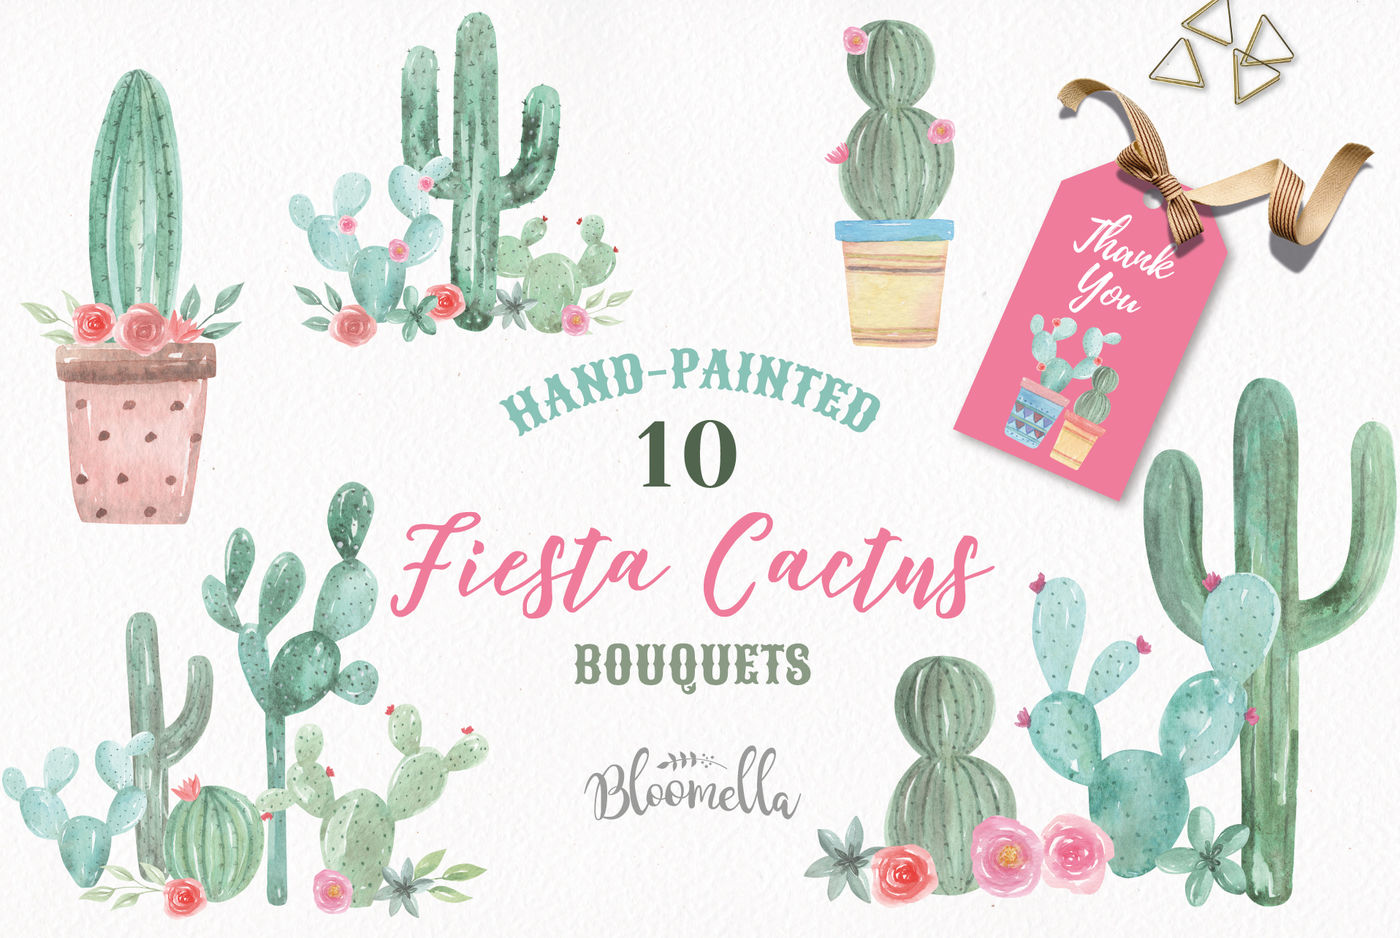 Cactus Watercolor Clipart Pots Floral Cacti Succulents Painted By Bloomella Thehungryjpeg Com